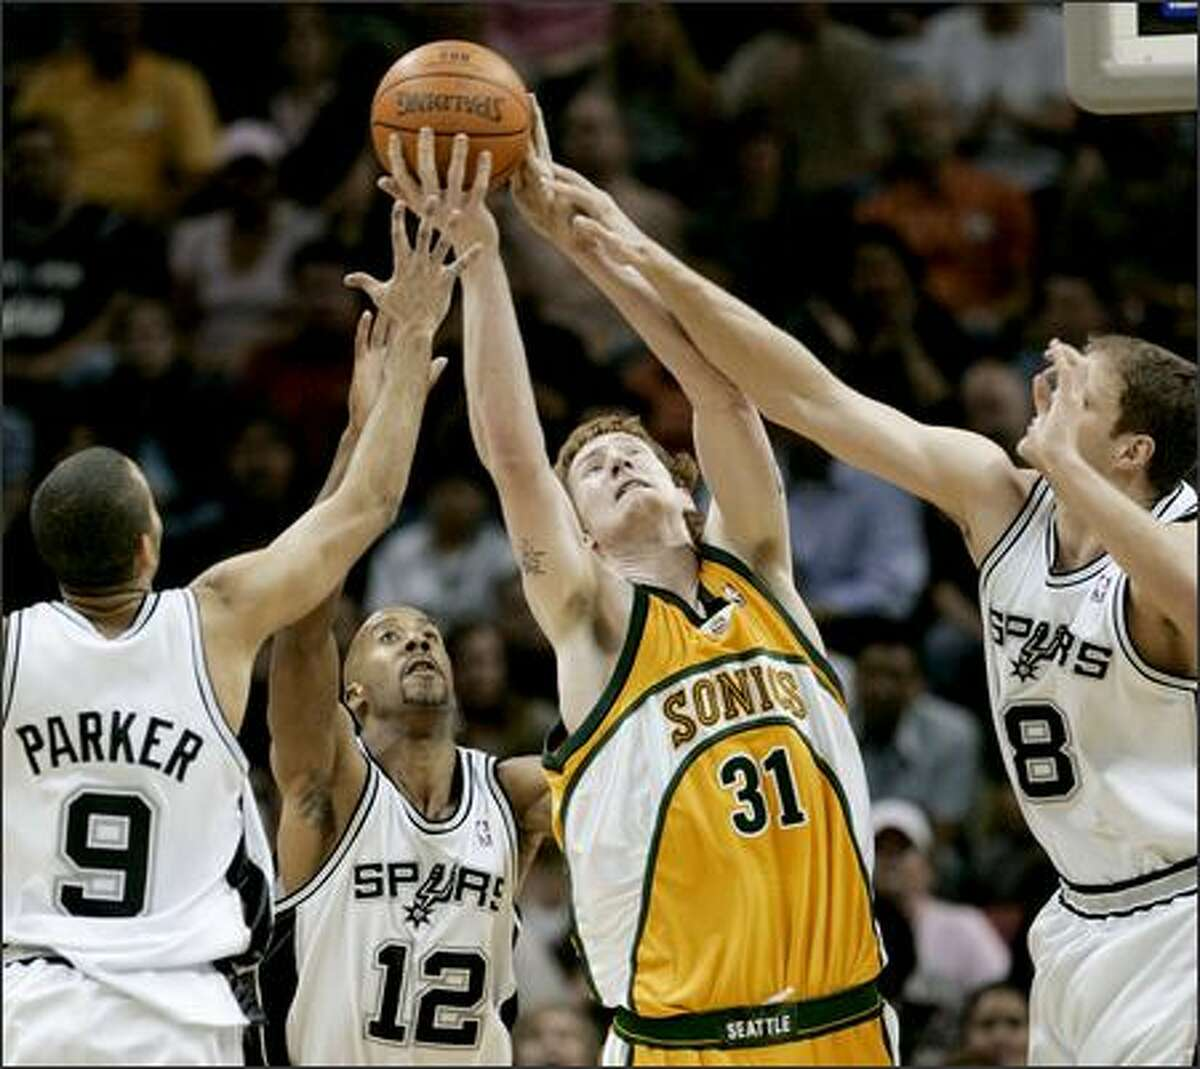 Sonics center Robert Swift reaches above three Spurs for a rebound in San Antonio's 104-95 win Tuesday night.